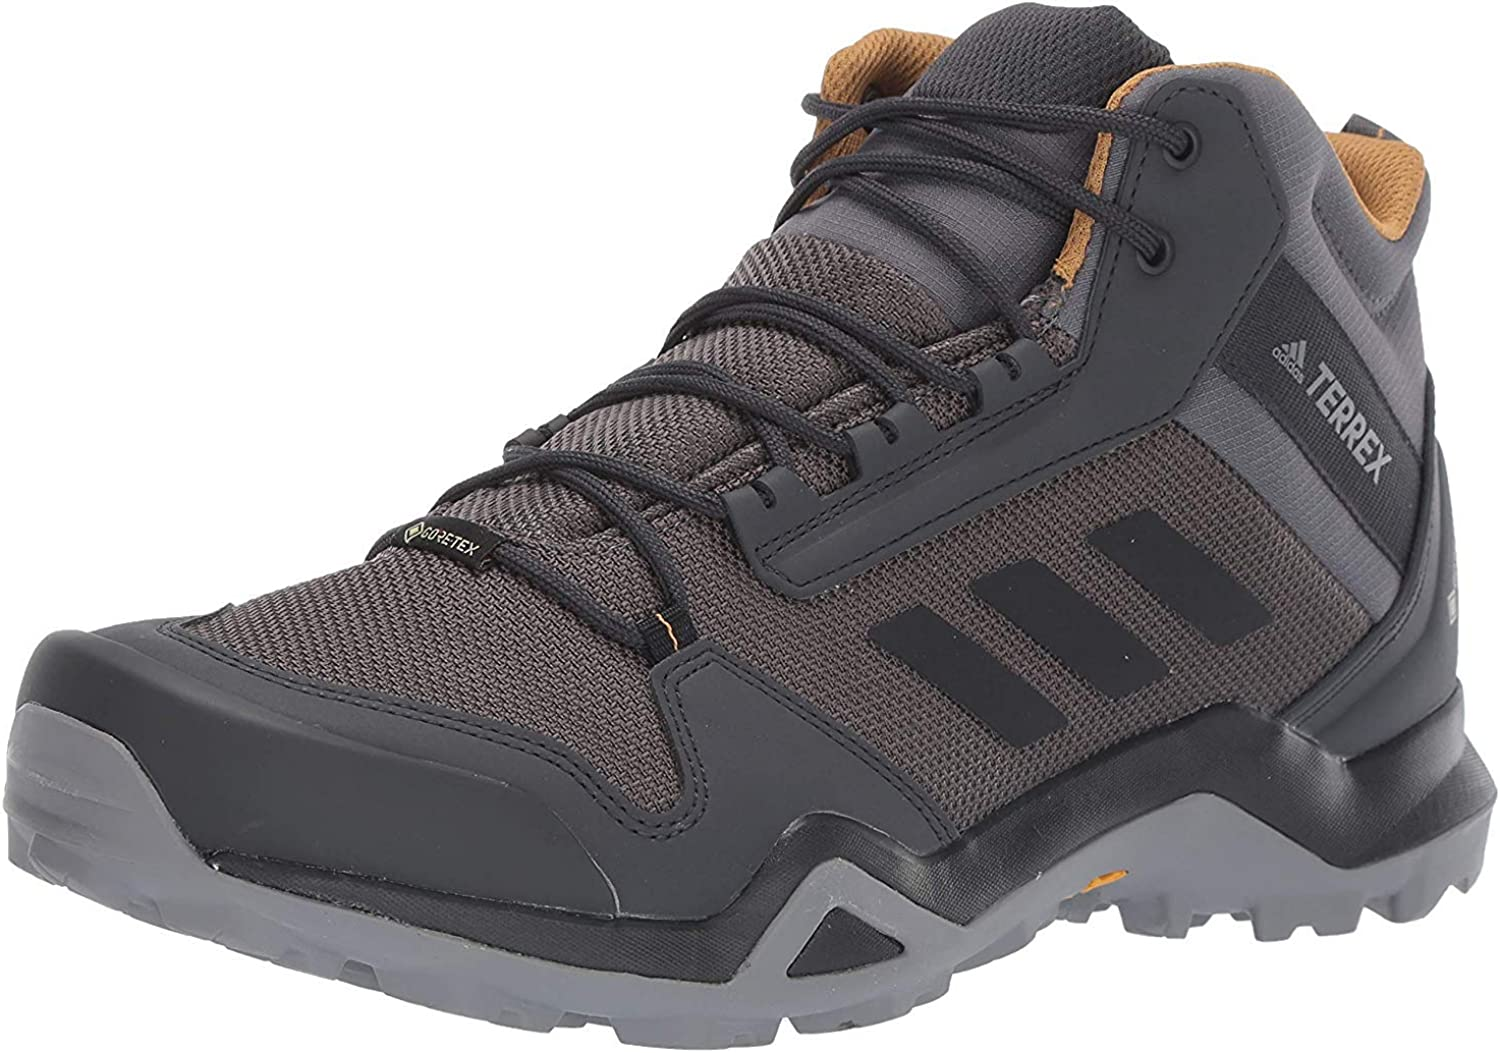 adidas outdoor Men's Terrex Ax3 Mid GTX Hiking Boot